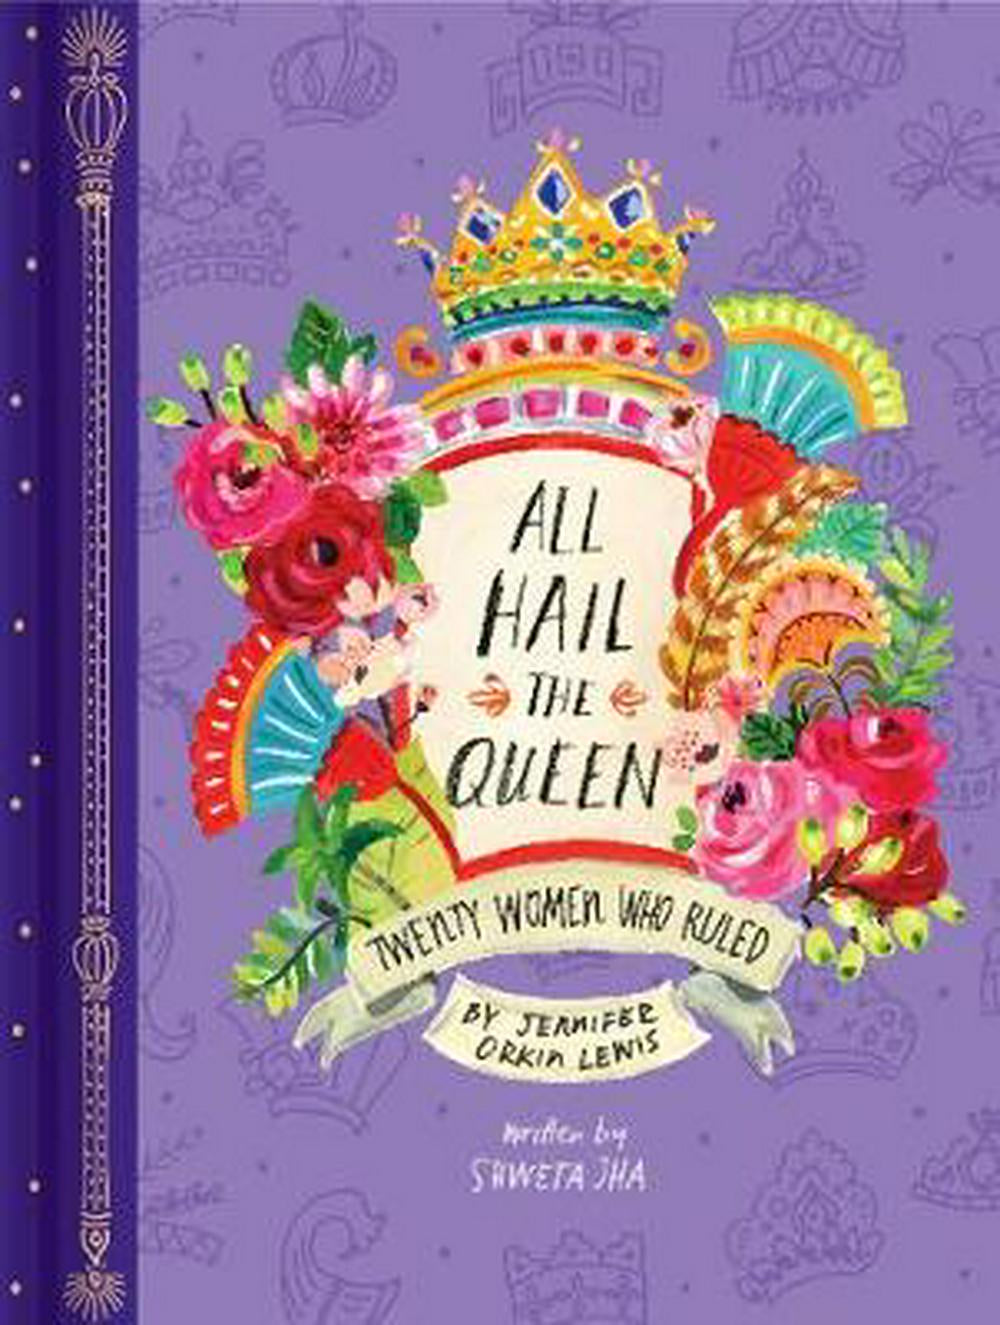 All Hail The Queen - Twenty Women Who Ruled Book